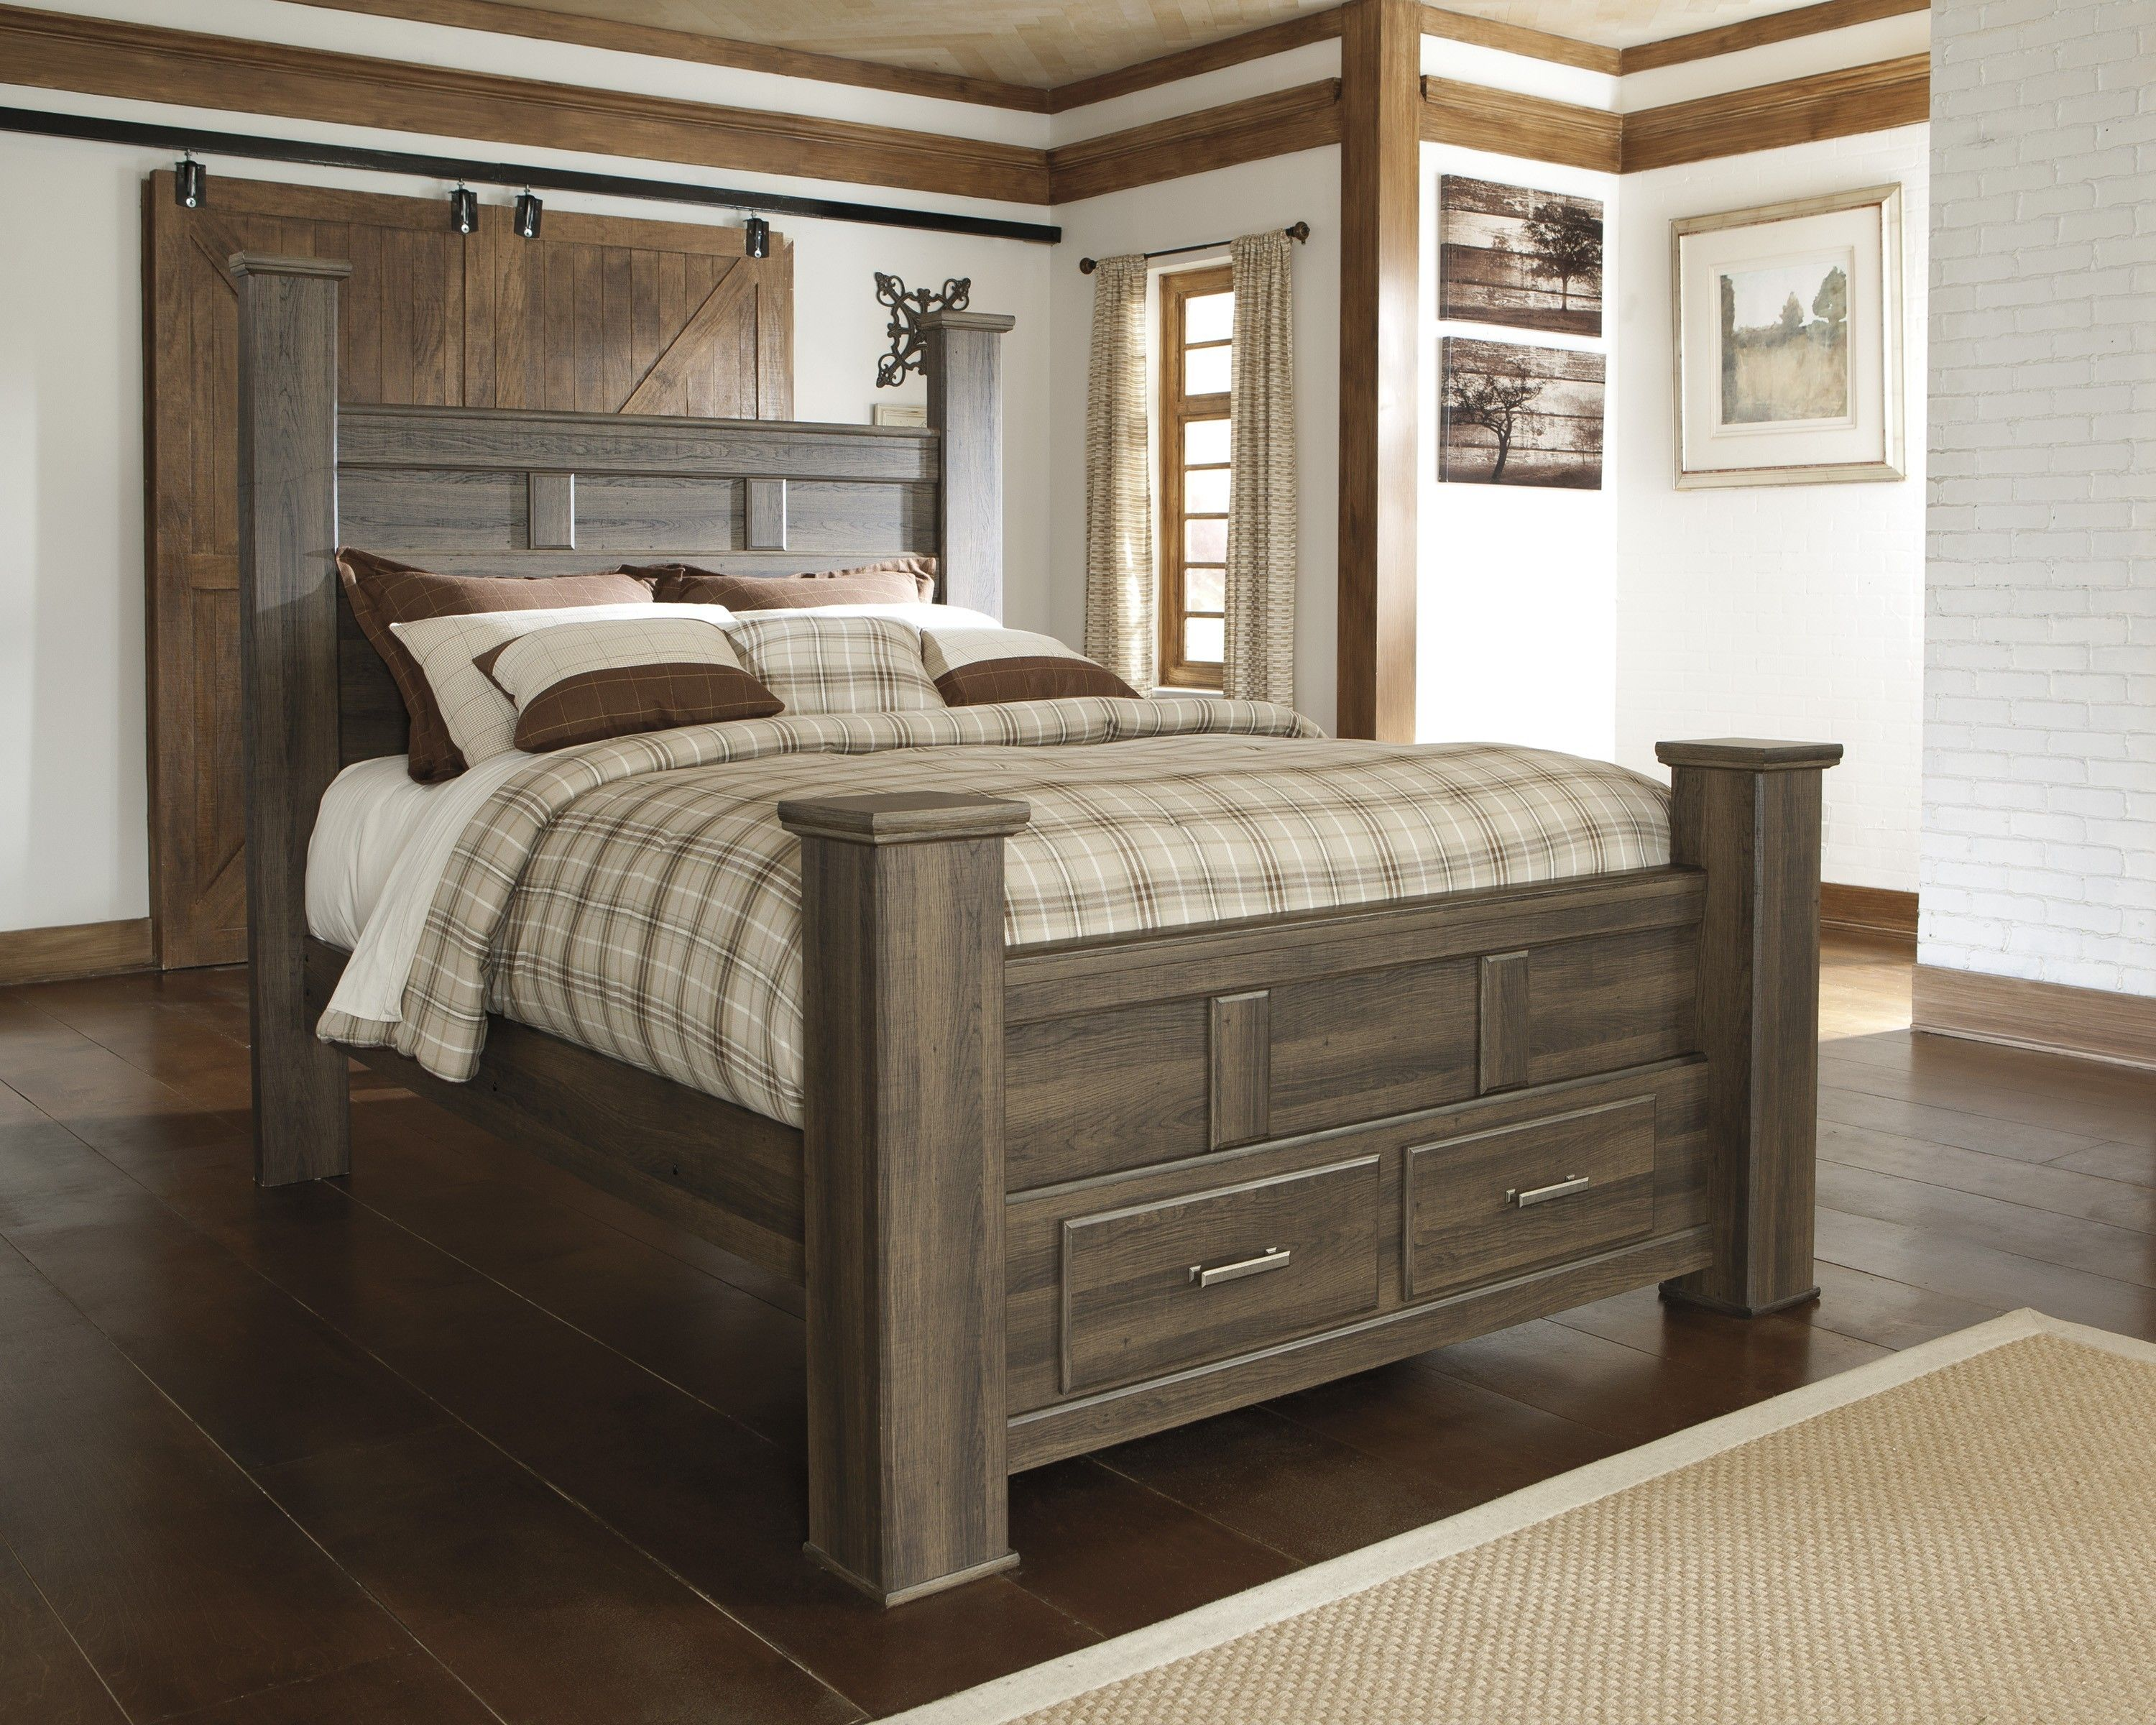 masculine dark smooth finished oak wood full size beds with storagebed